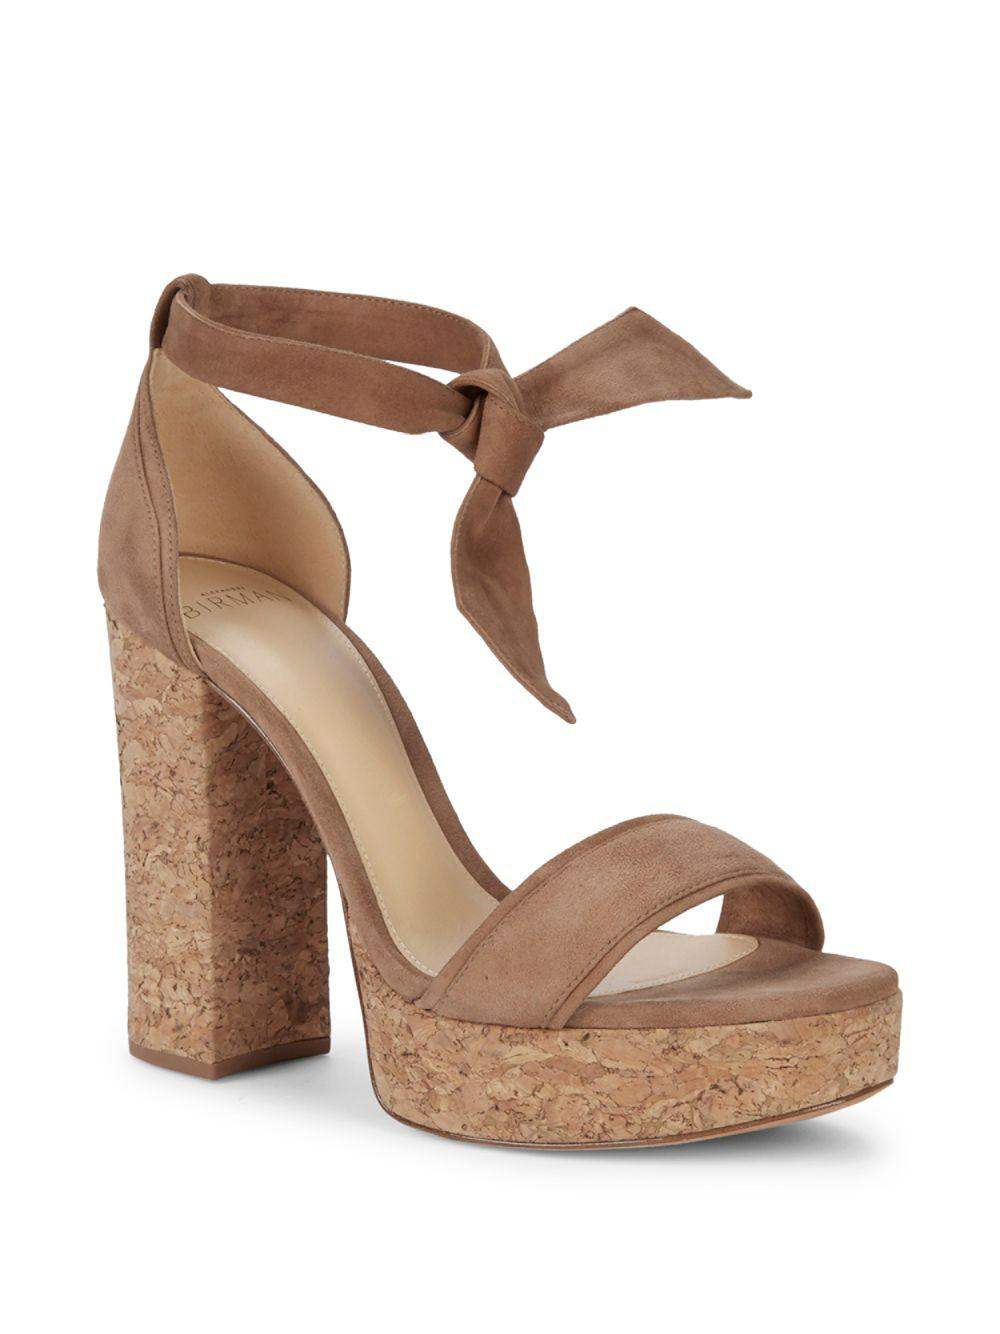 d2a9306c39a Lyst - Alexandre Birman Celine Cork Platform Sandals in Natural